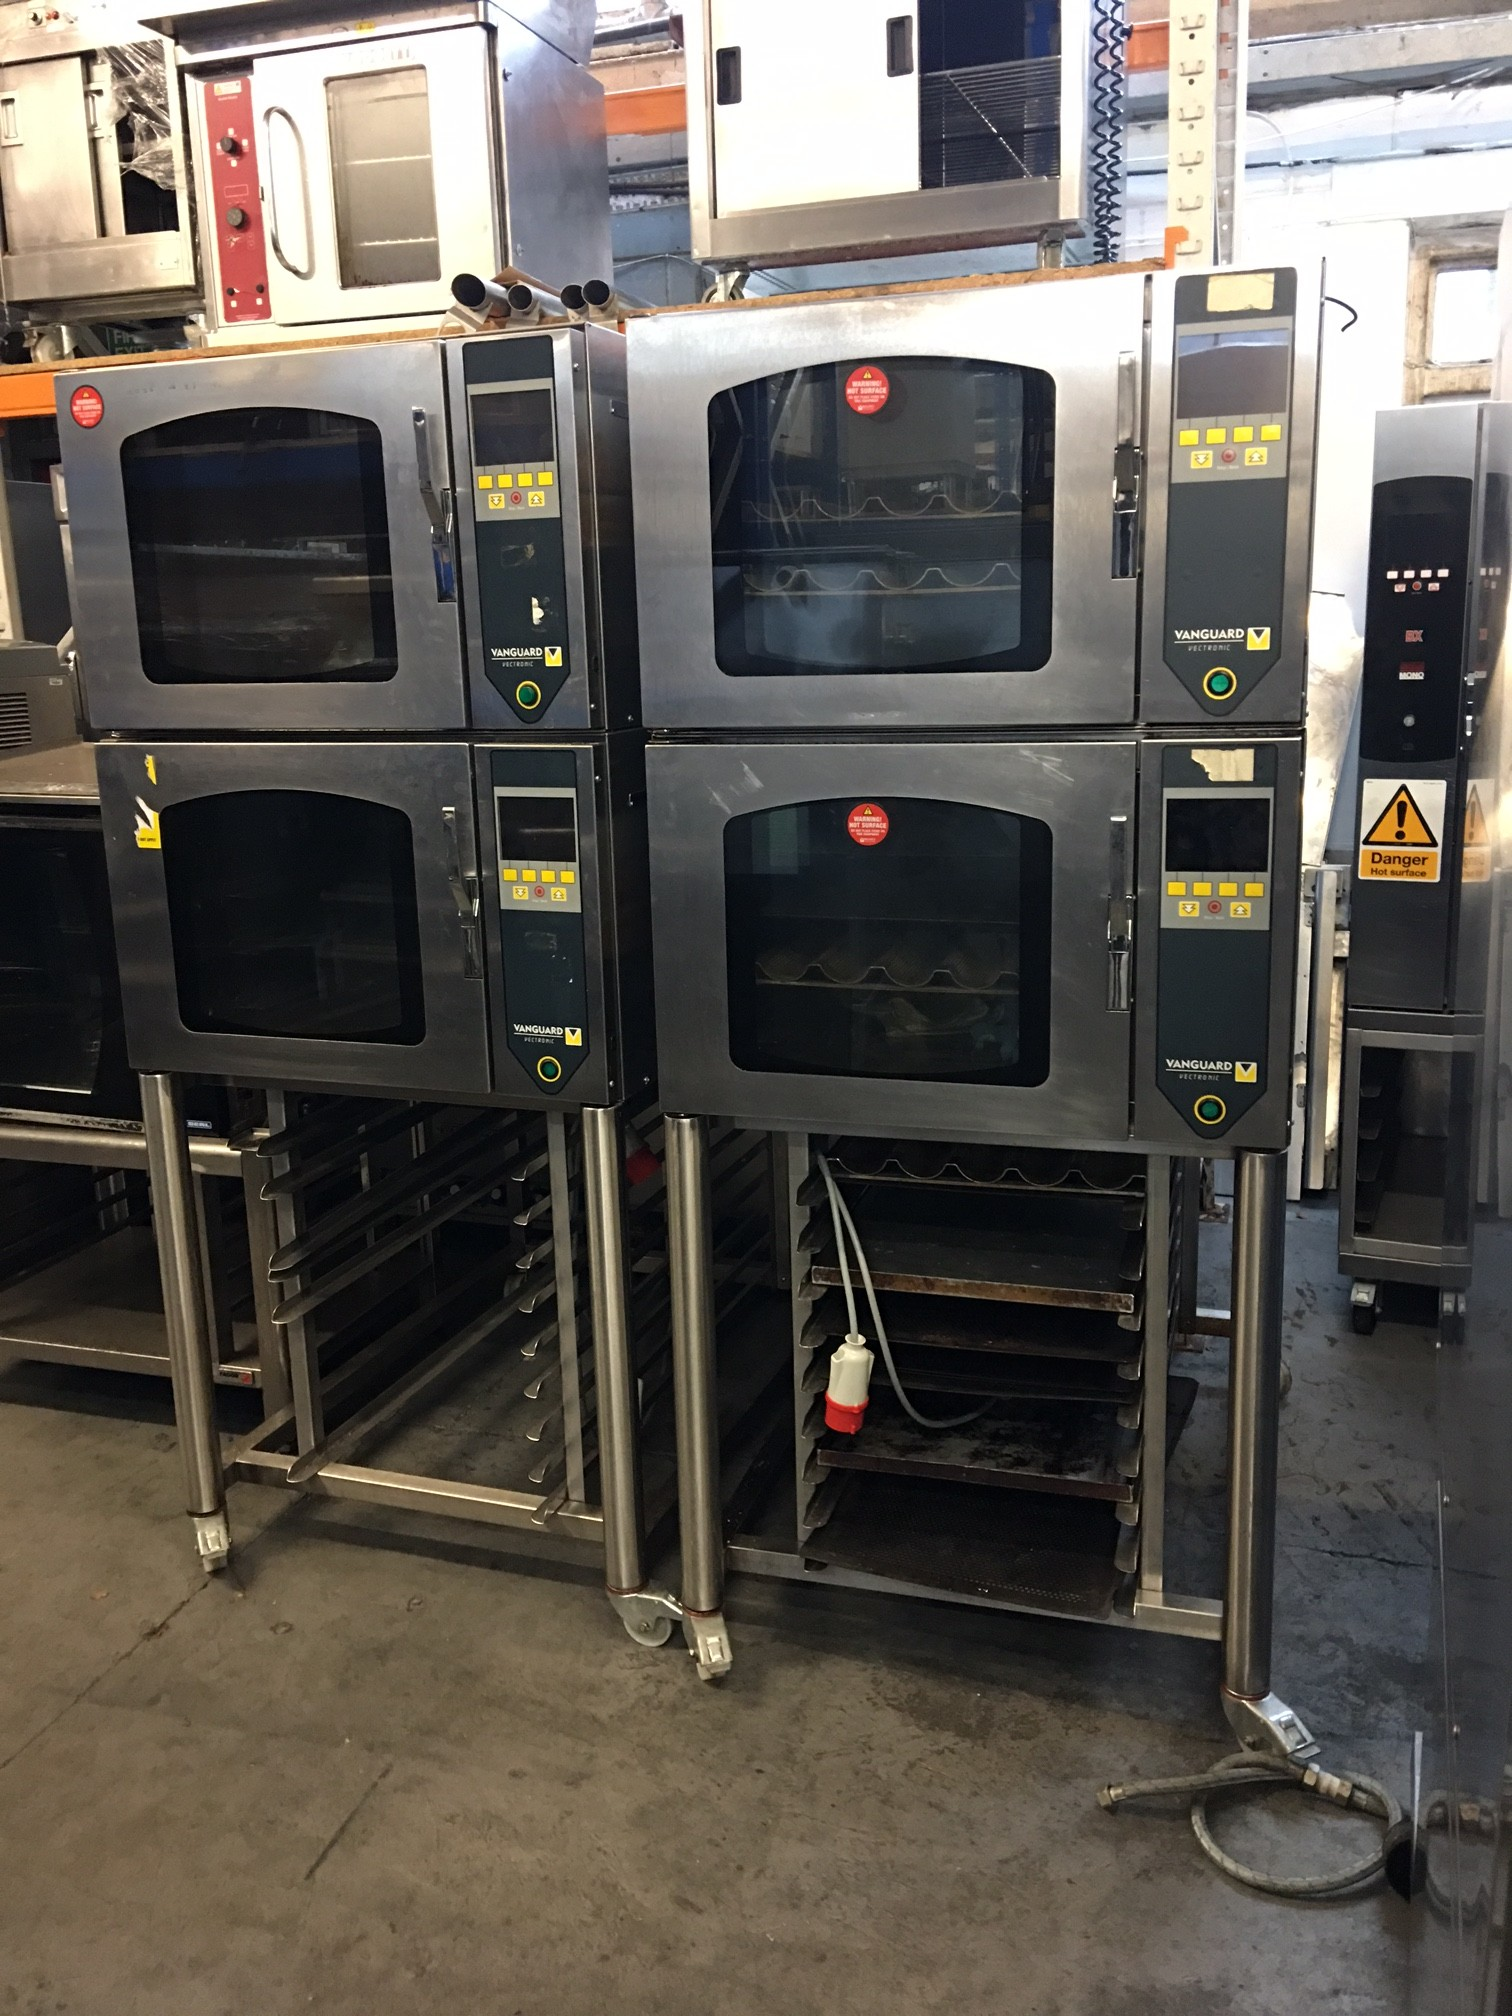 Vanguard Vectronic Double Bread Oven Model No Fg159 With